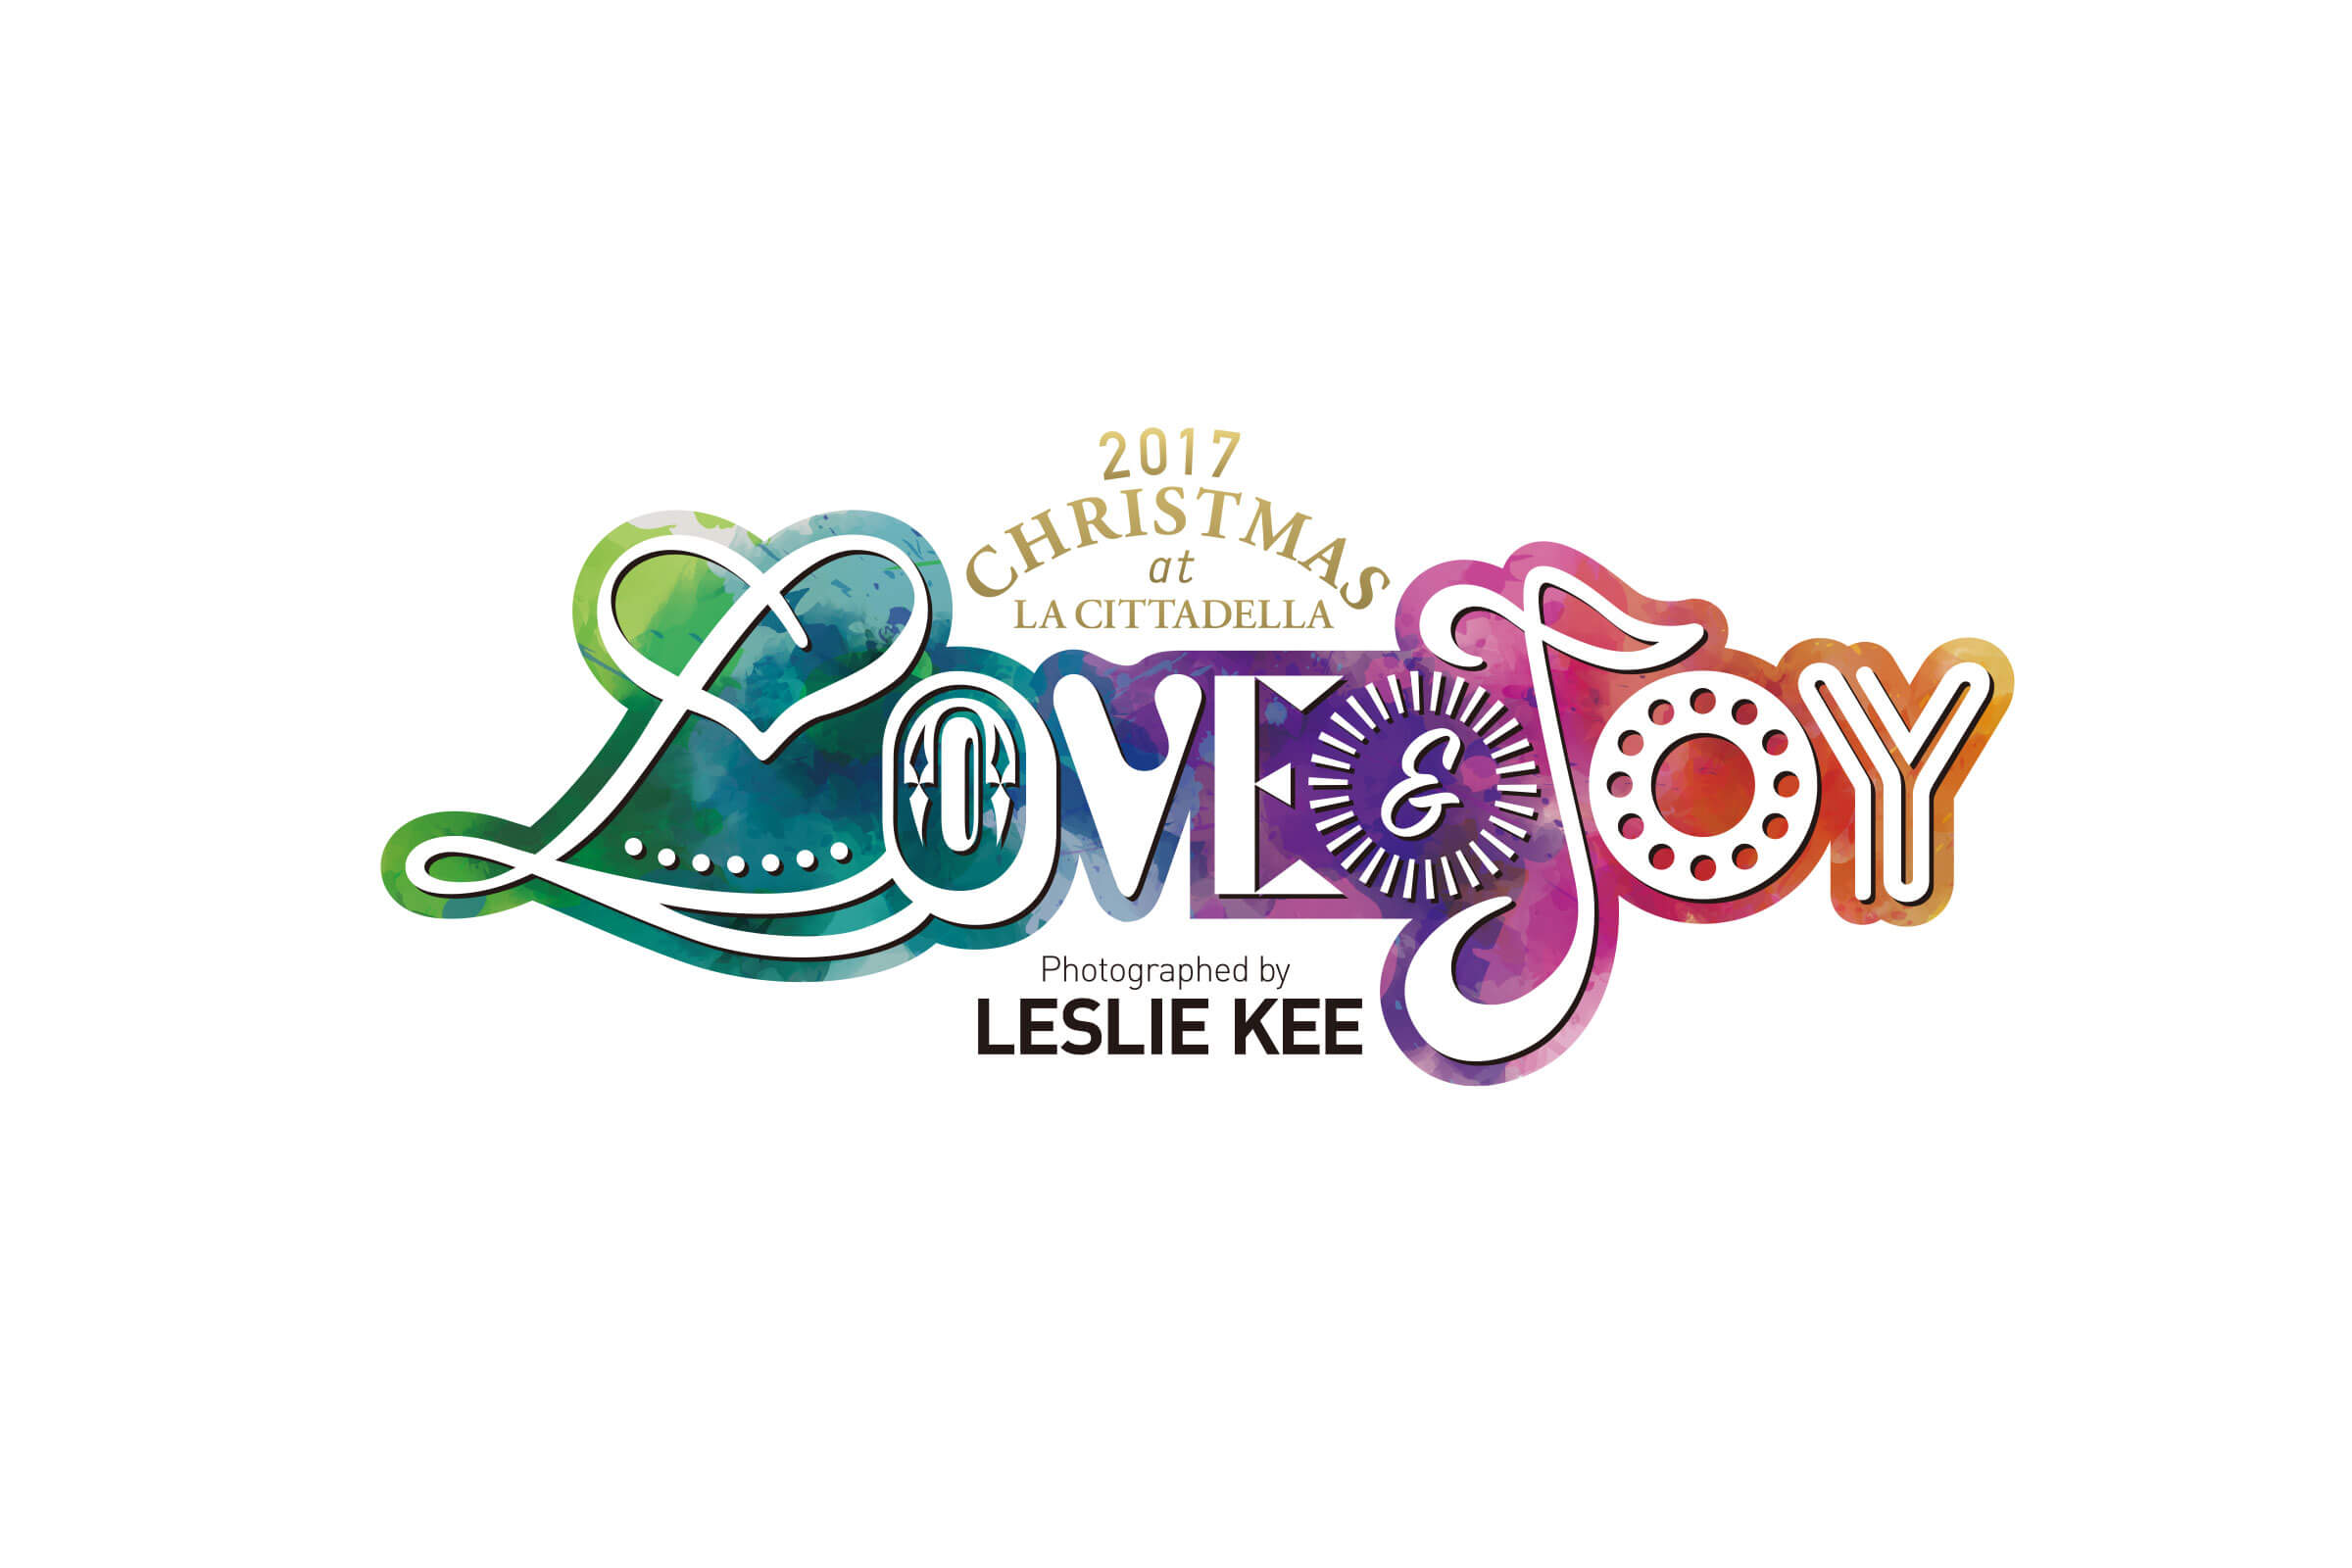 LOVE & JOY Photographed by LESLIE KEE イベントロゴ パターン1